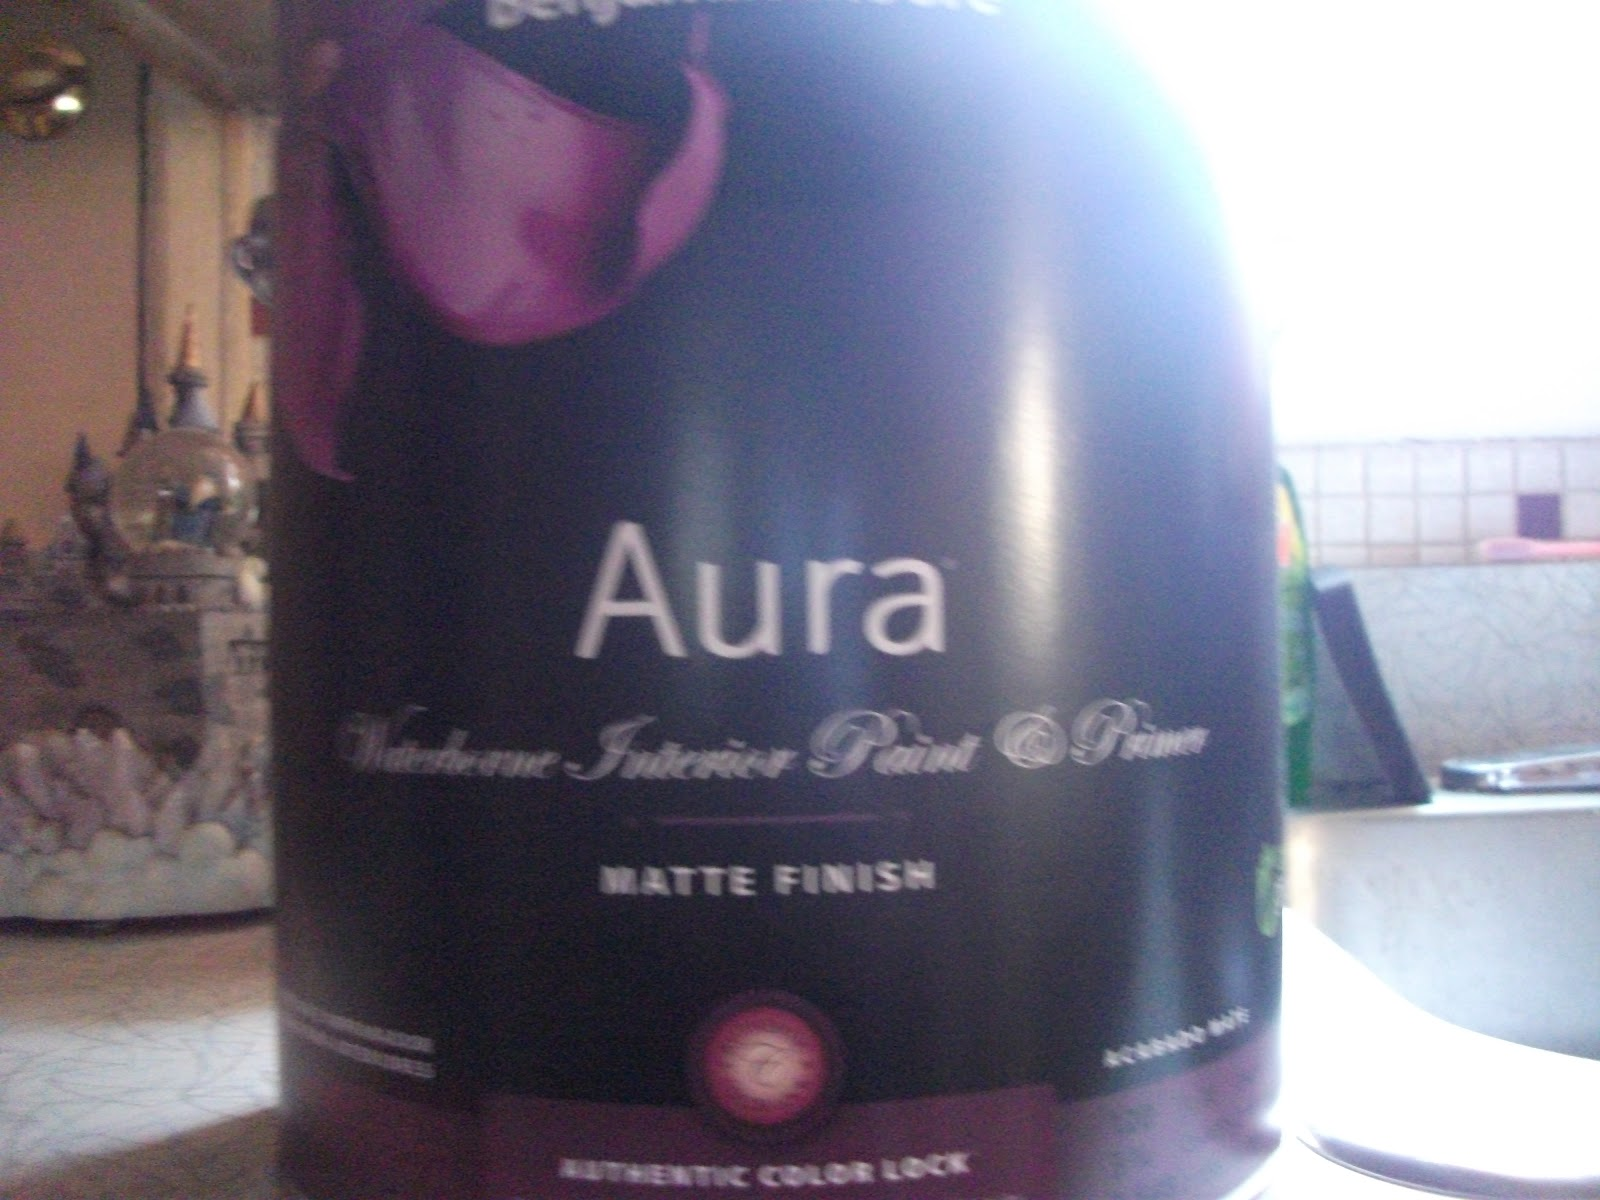 Choco loco review and products benjamin moore aura paint - Benjamin moore aura interior paint ...